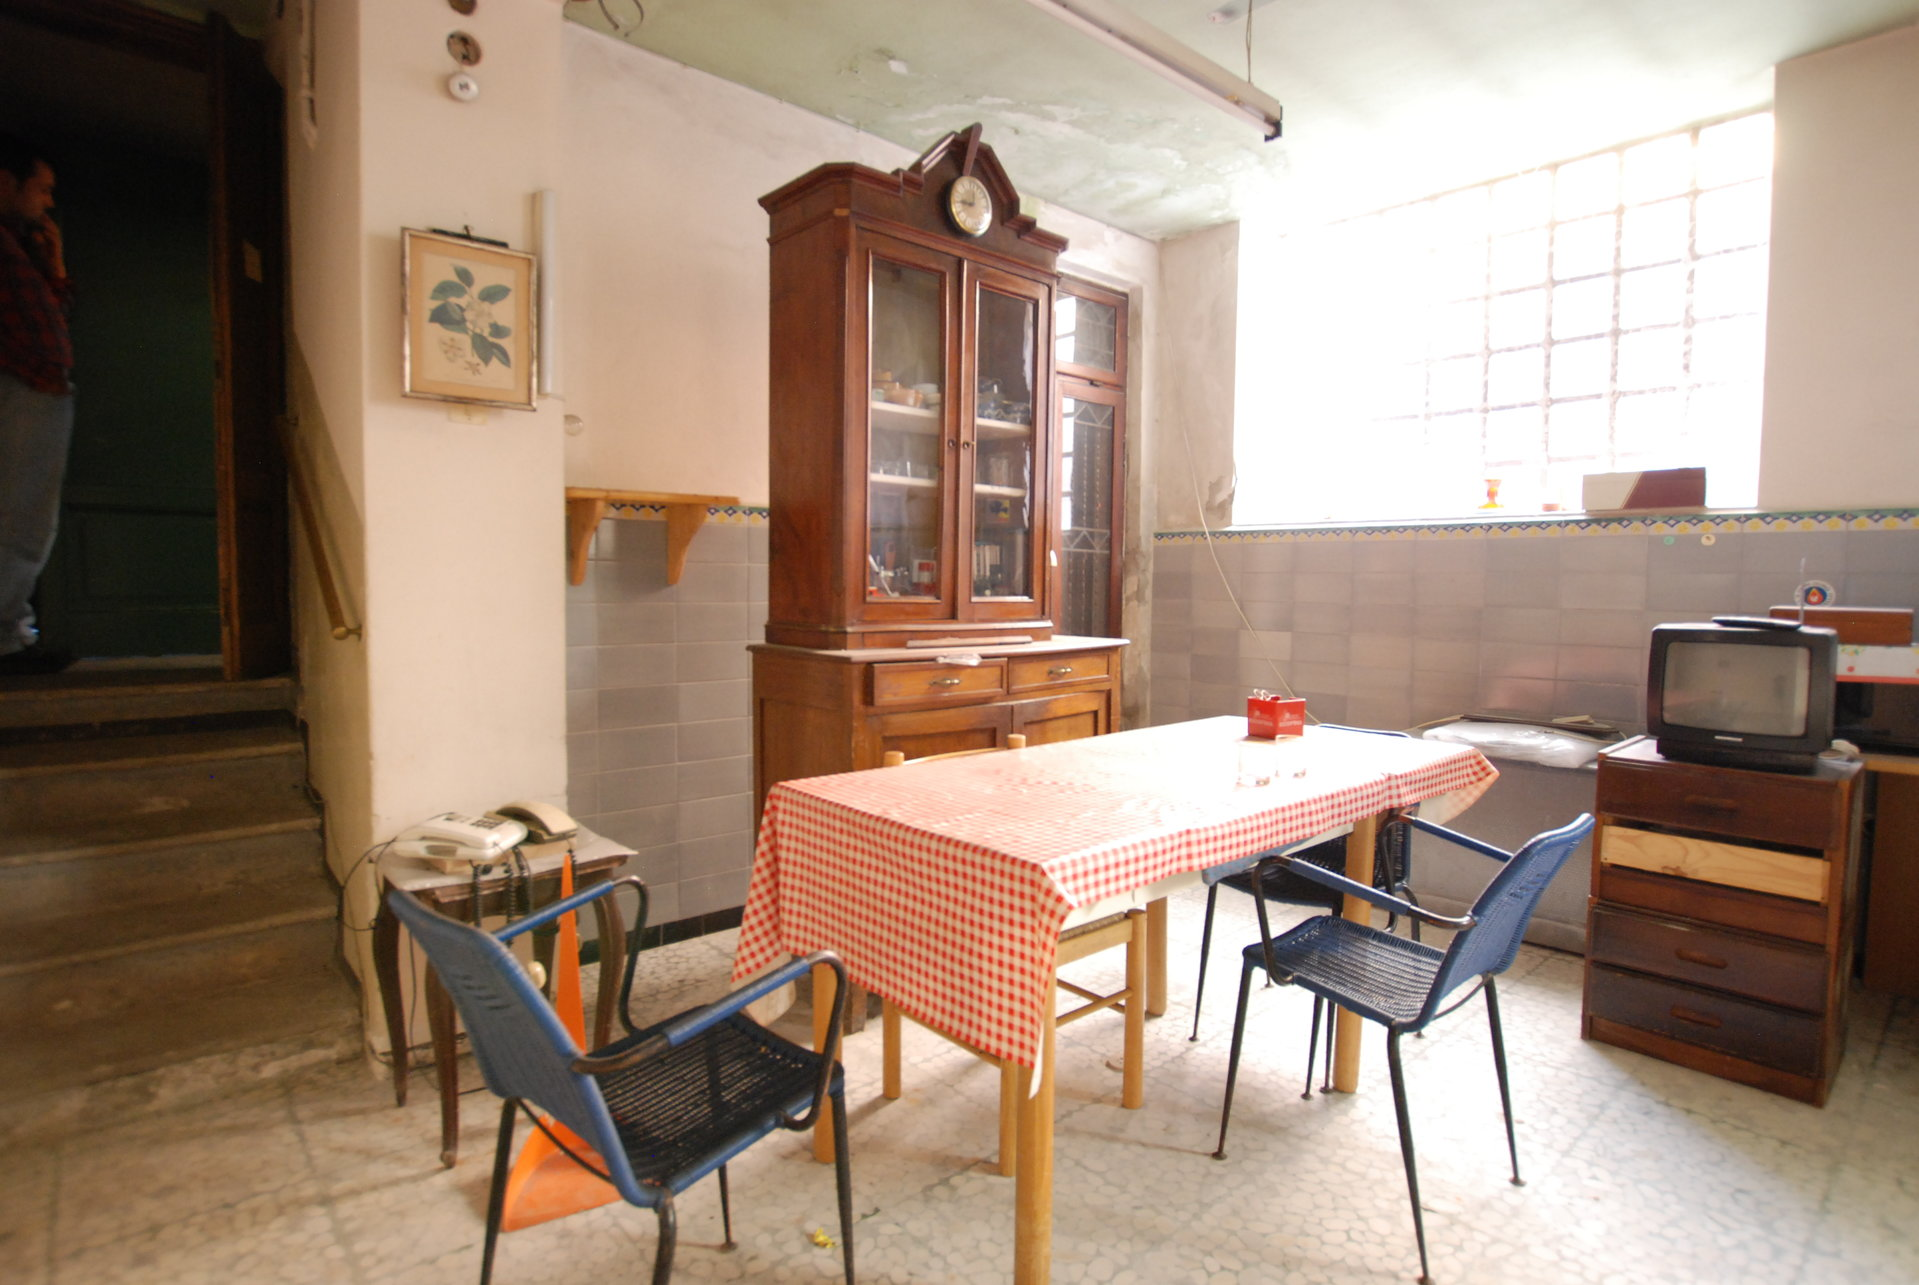 Historic villa for sale in Golasecca - kitchenette